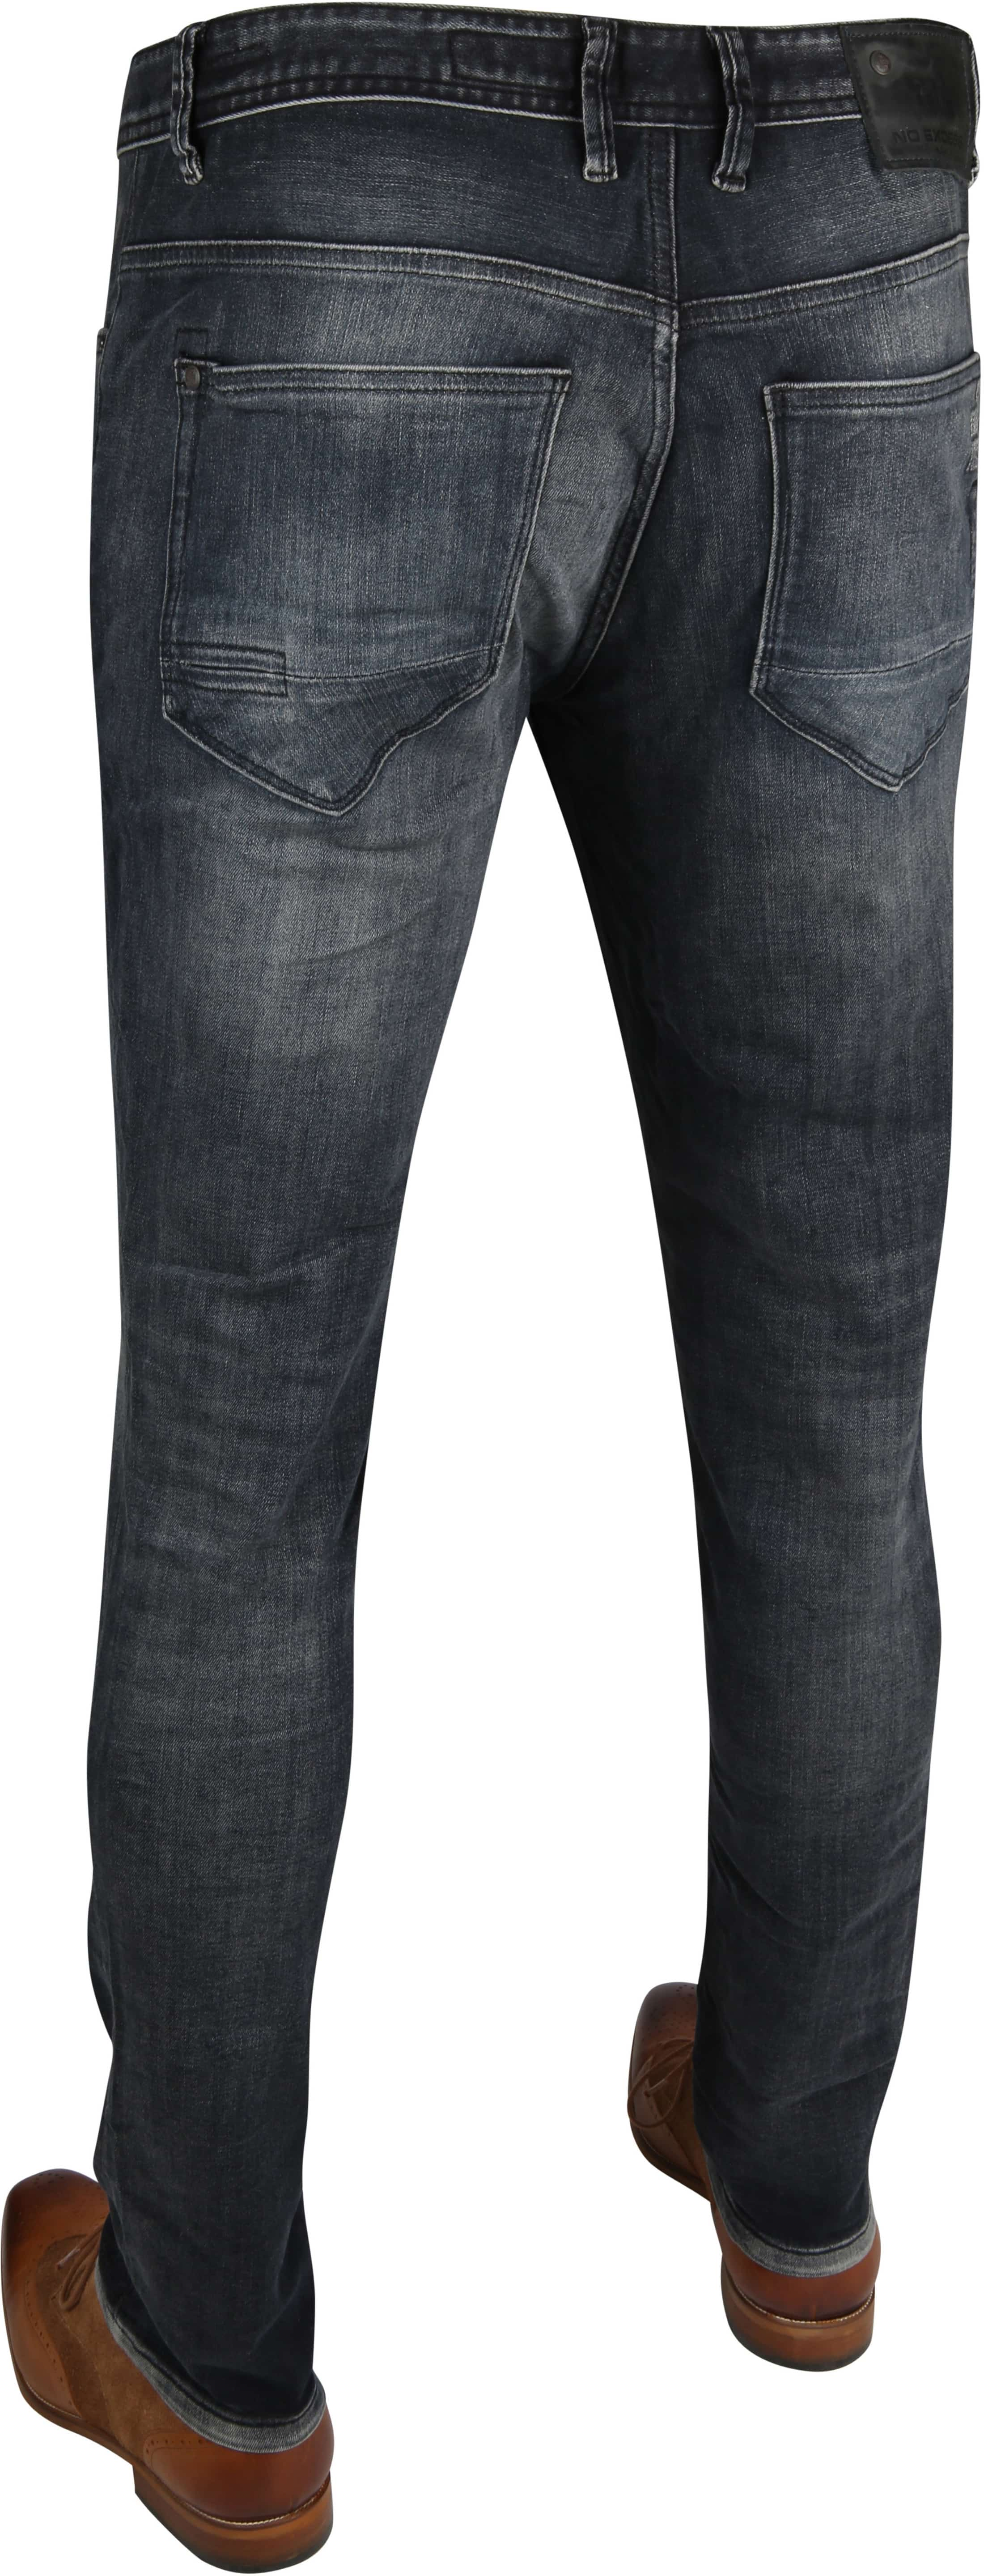 No-Excess Jeans 710 Grey Denim foto 2